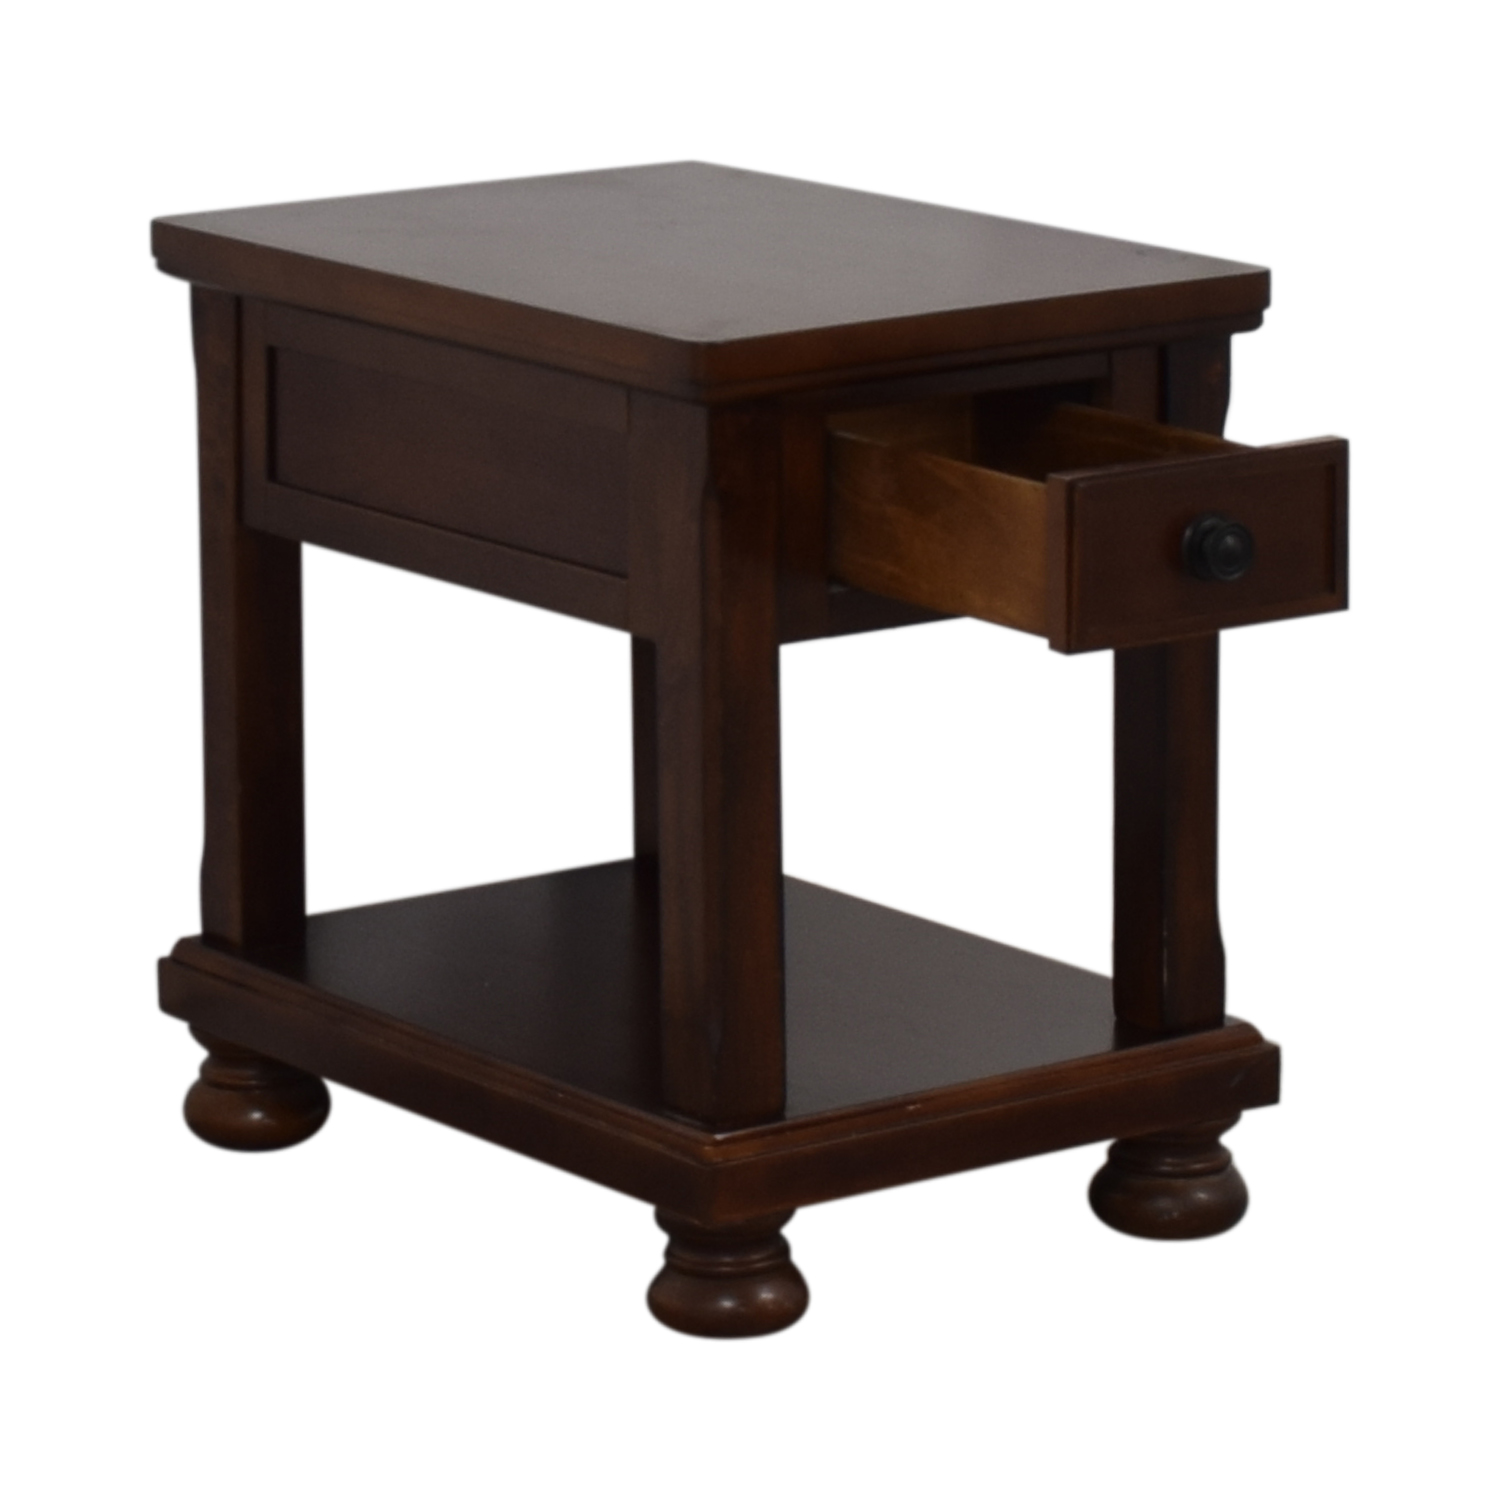 off ashley furniture porter single drawer end table tables metal side legs percent coupon dog crate stand with file console storage chocolate leather sofa white and black brooklyn